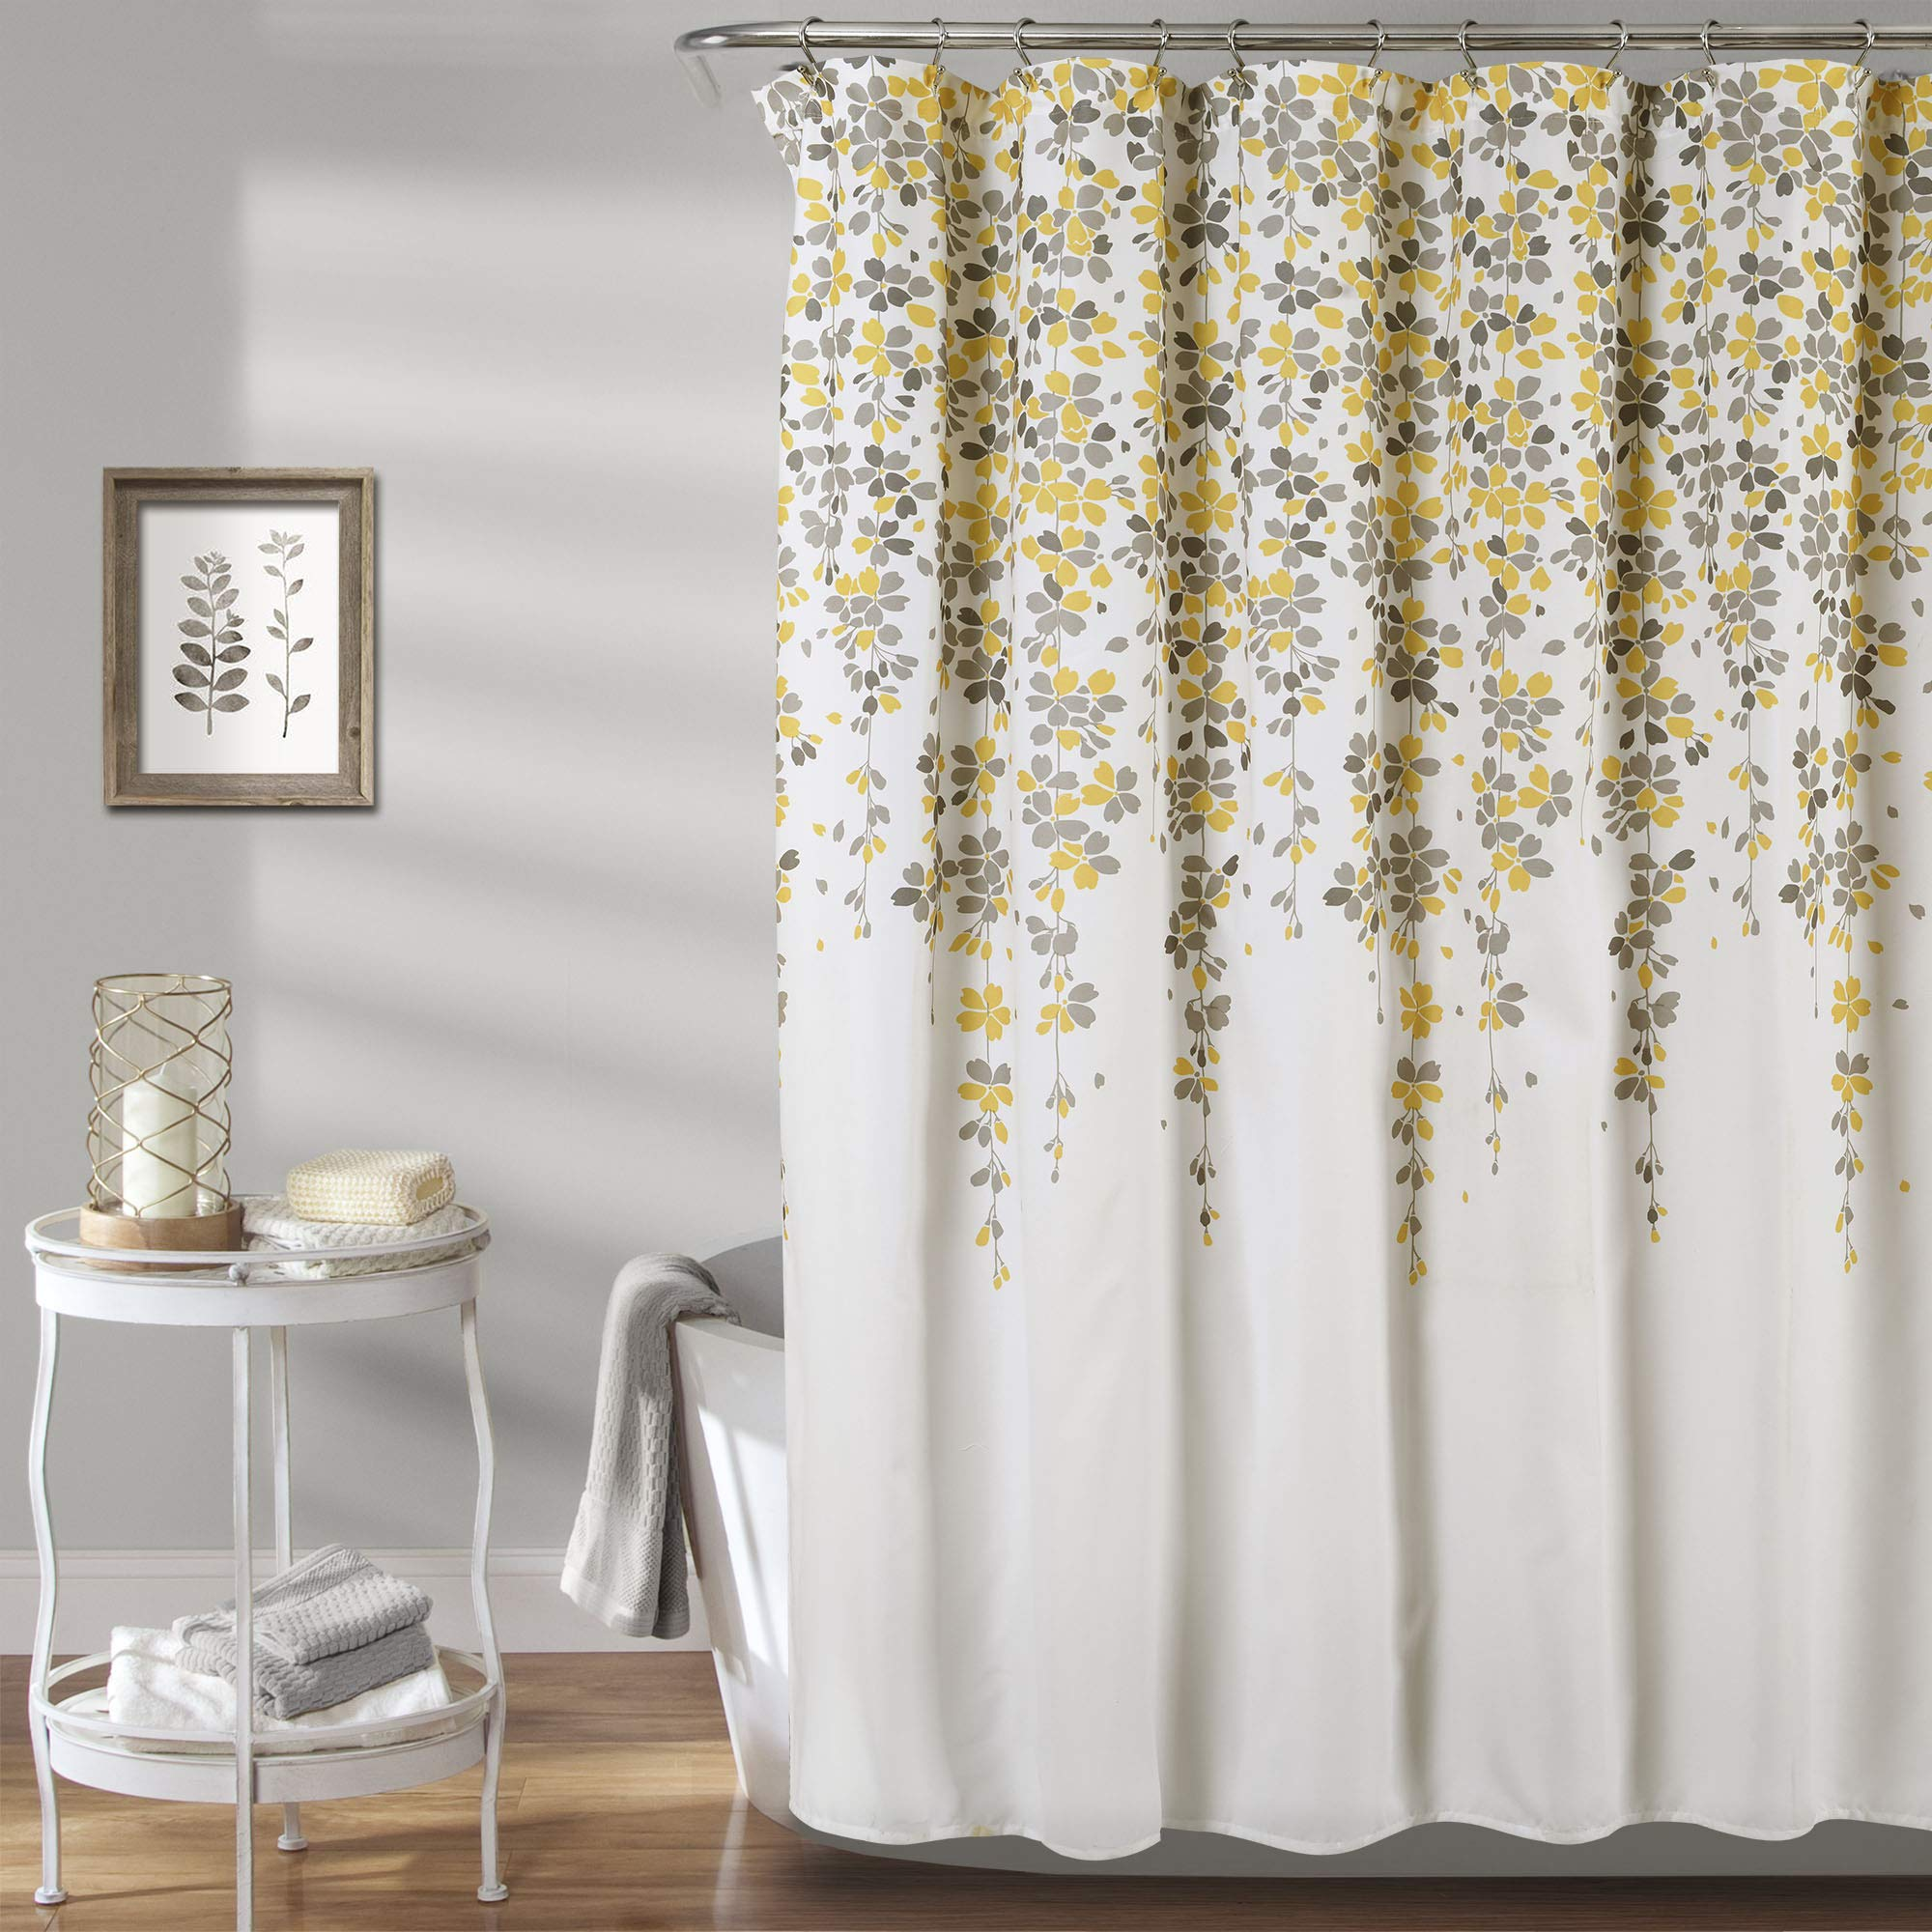 """Lush Decor Weeping Flower Shower Curtain - Fabric Floral Vine Print Design, 72"""" x 72"""", Yellow and Gray"""